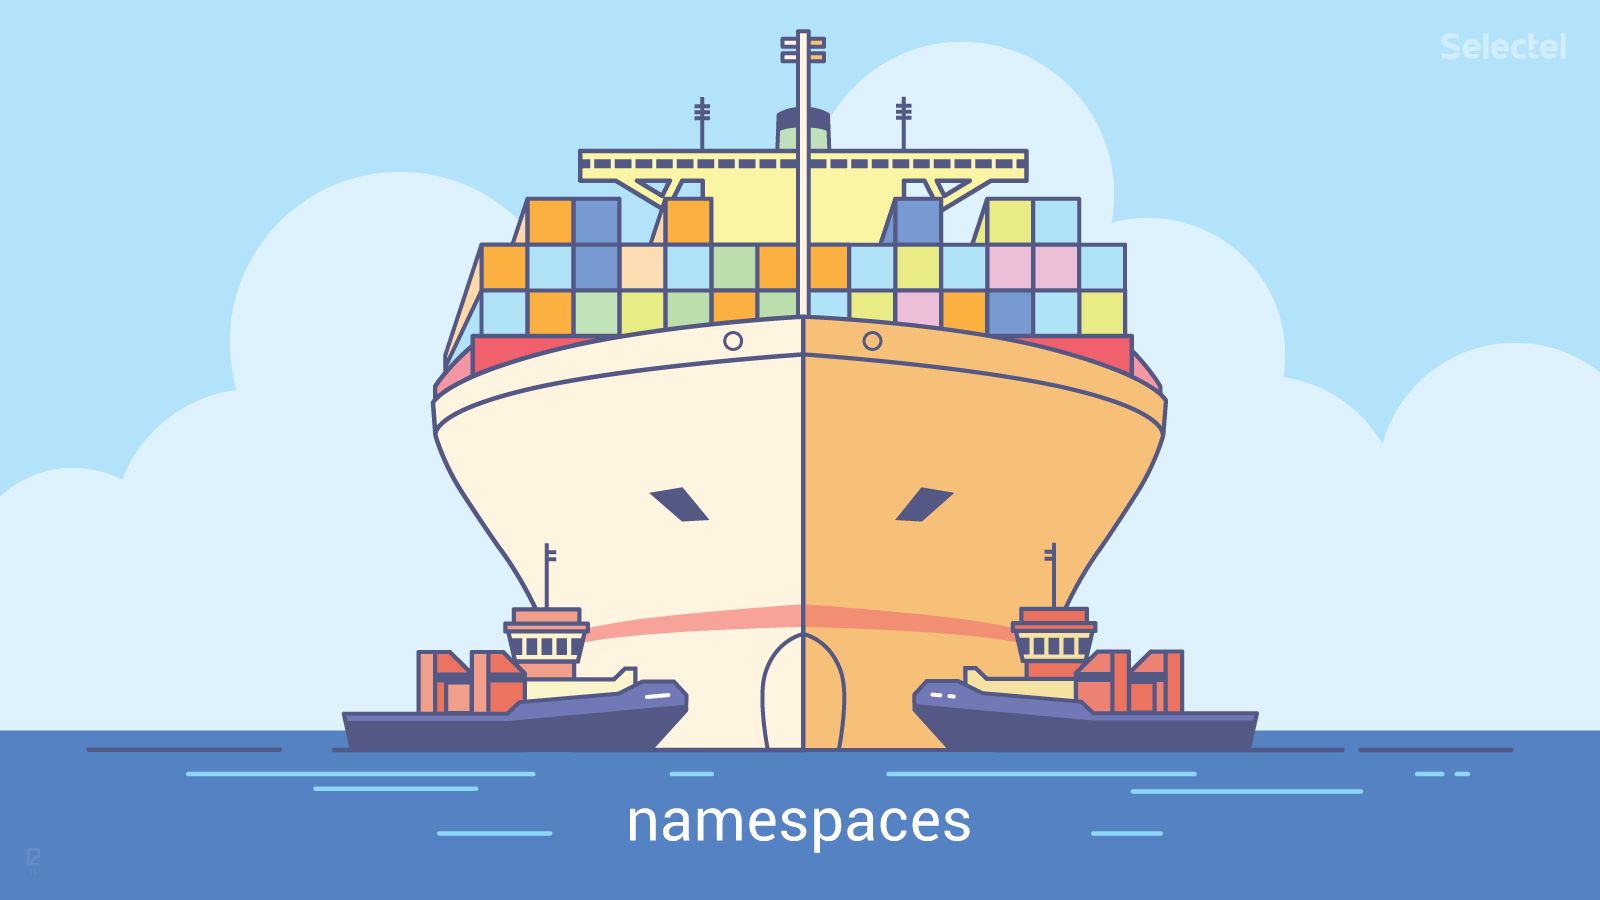 namespaces